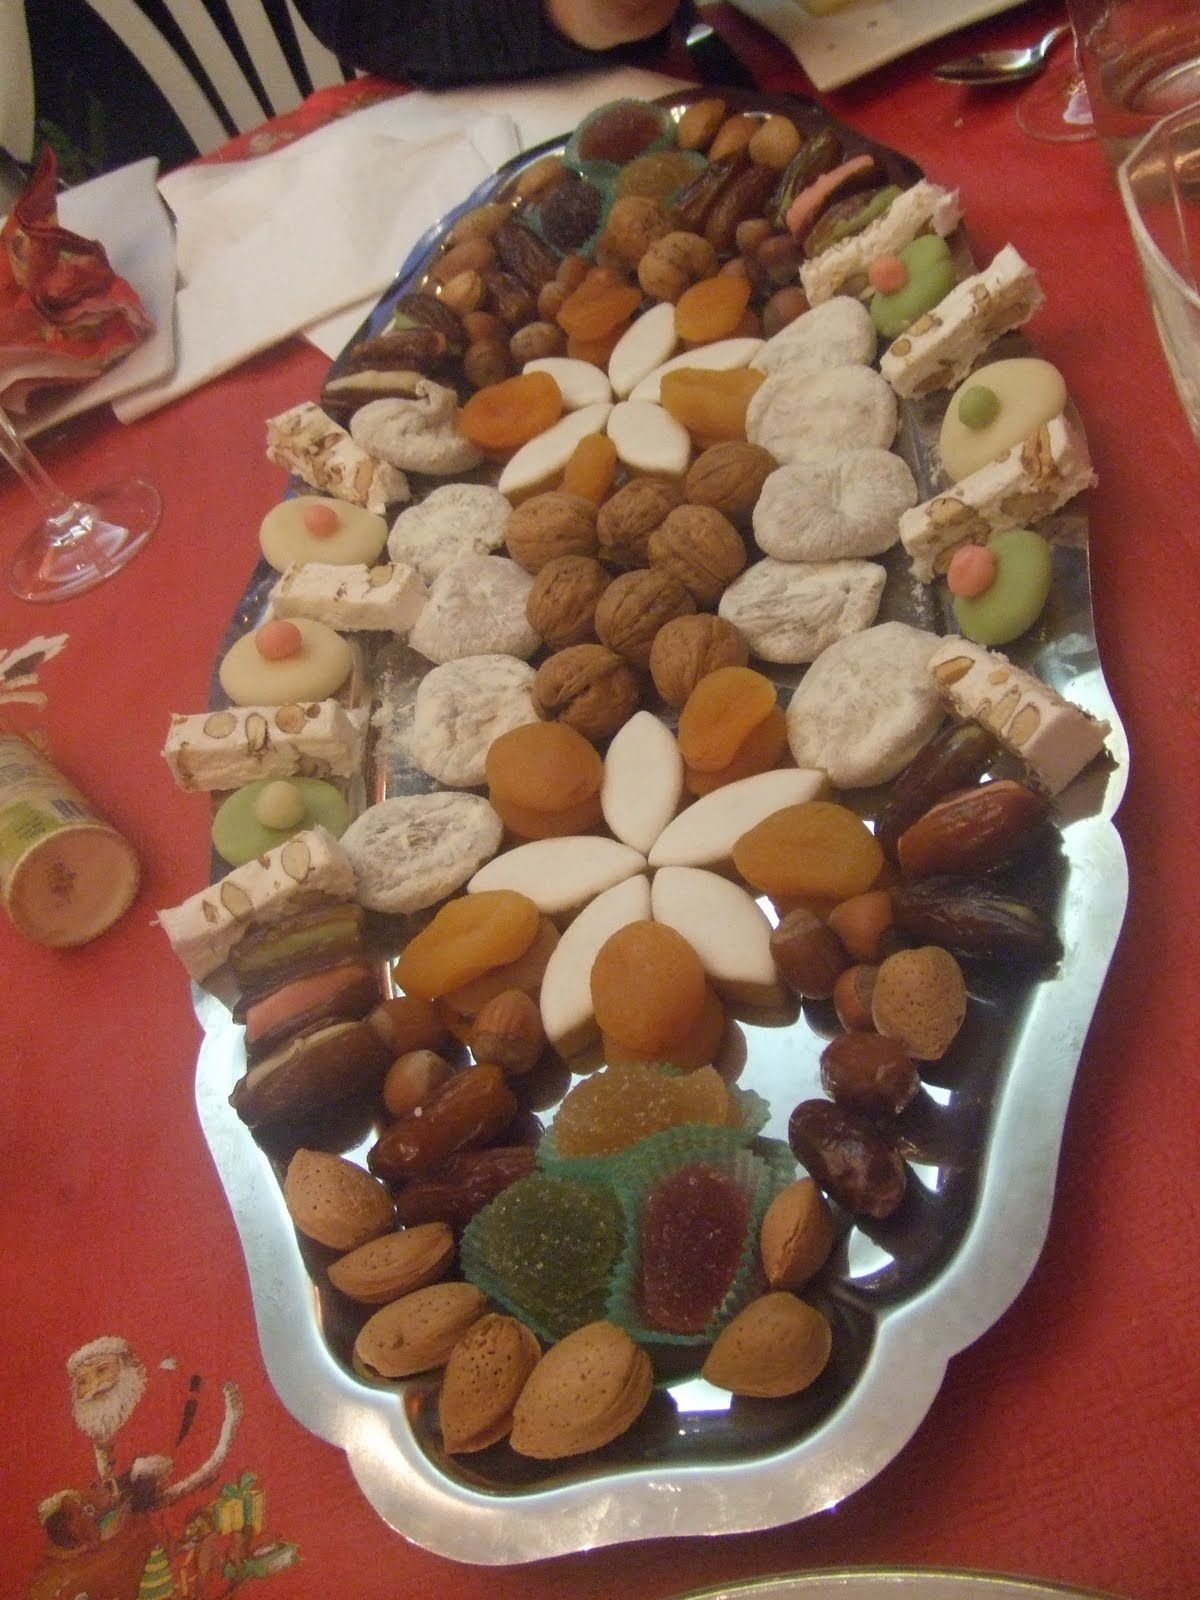 yummmmmy french christmas desserts aahh les calissons